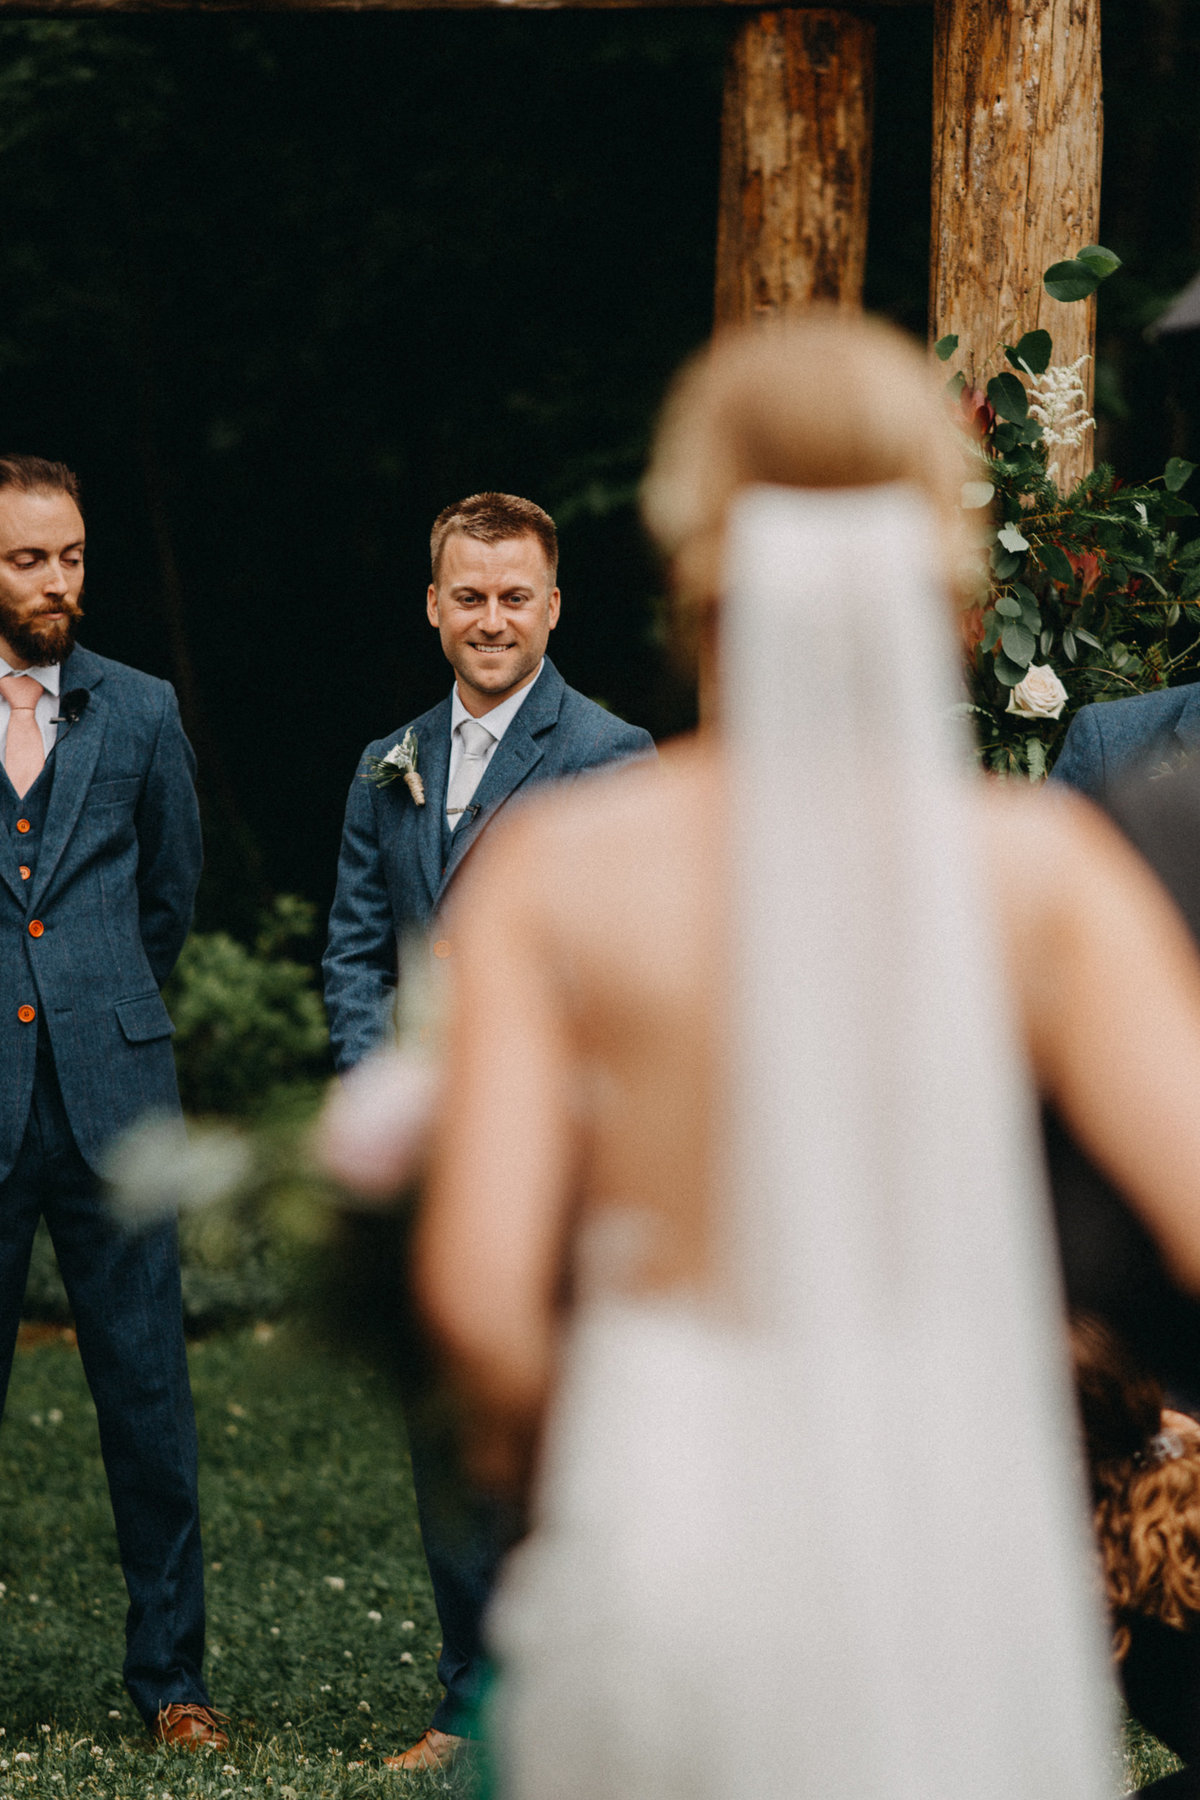 Groom looking at bride walking down aisle